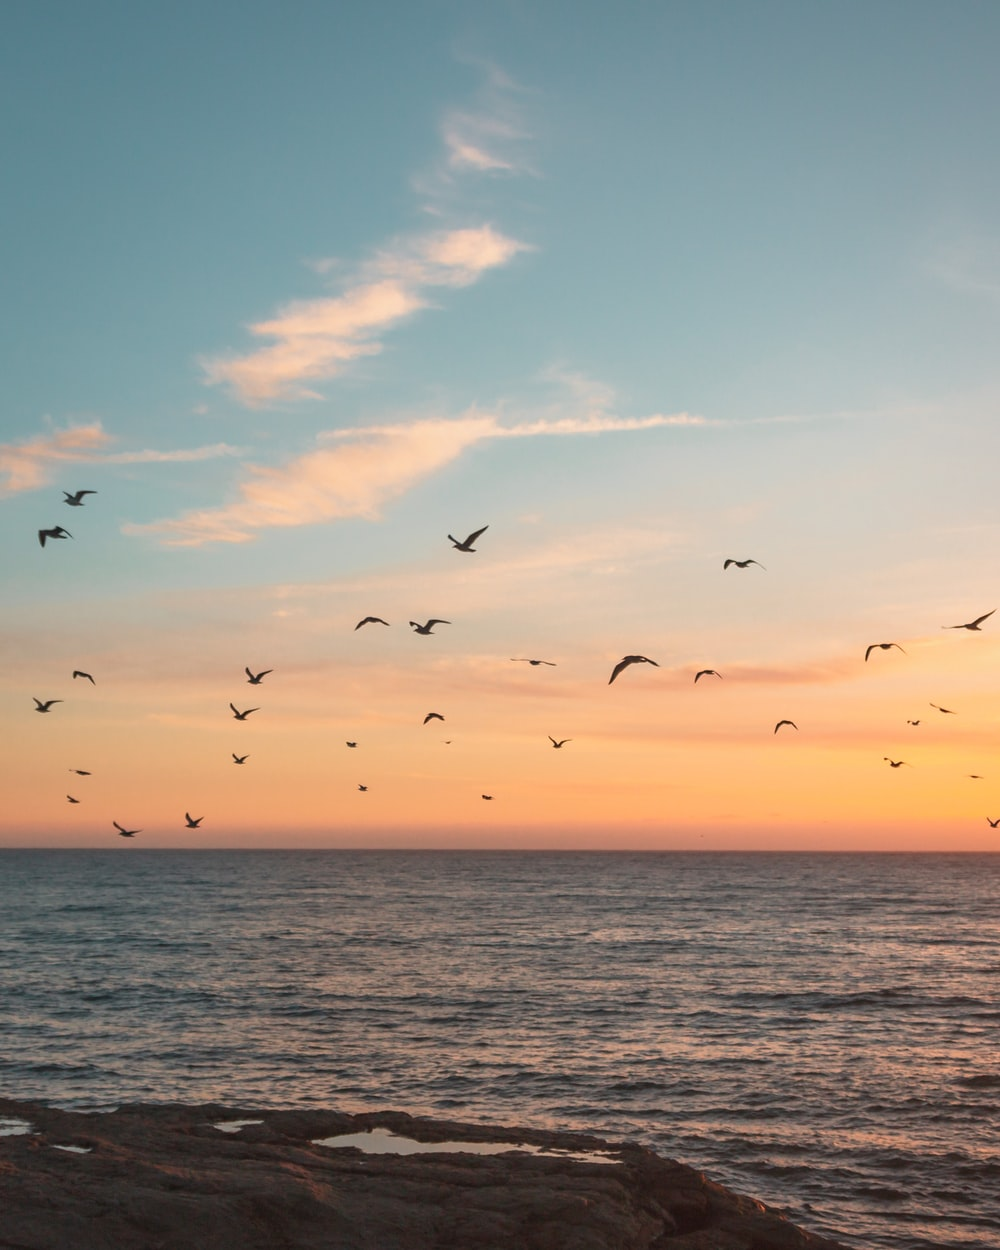 flock of birds flying over the sea